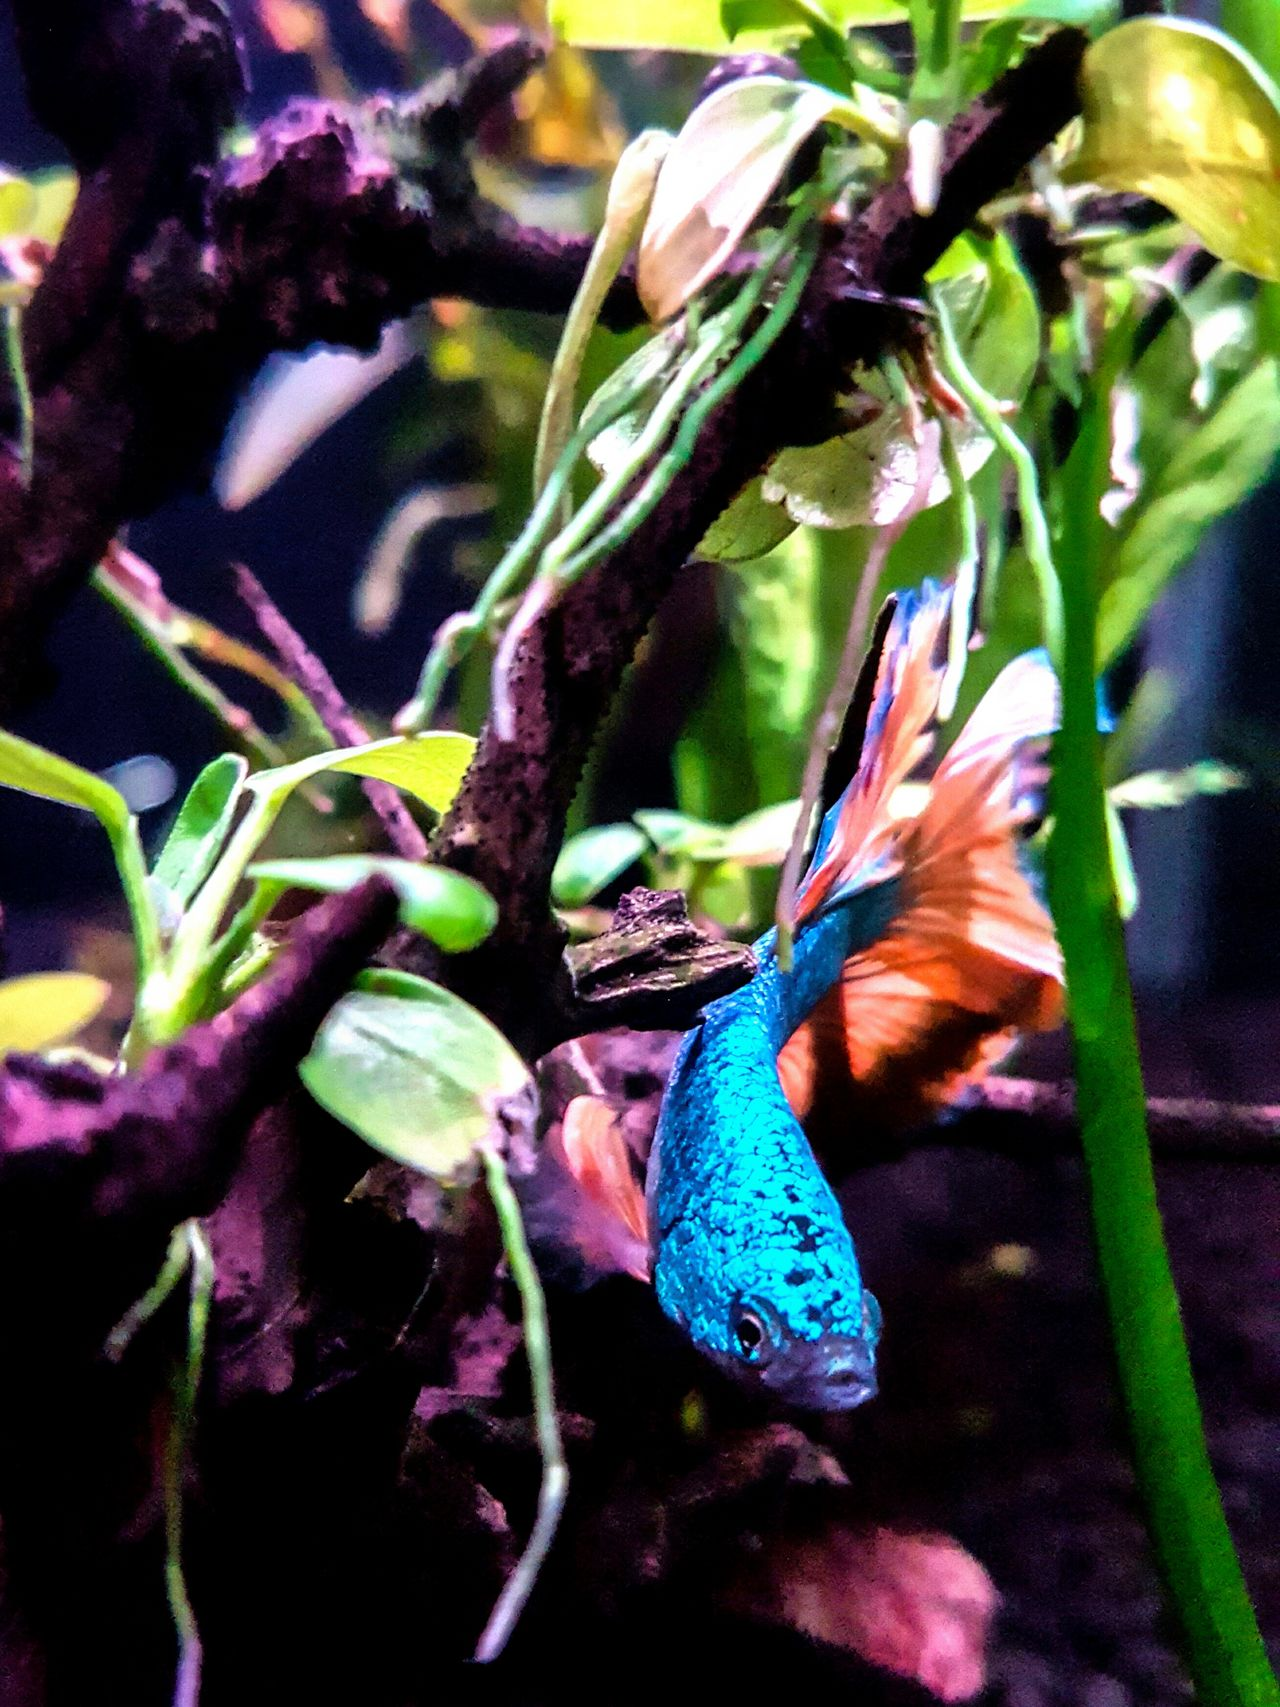 Betta Fish Bettasiamesefish Bettasplendens Betta Lovers Bettafishcommunity Color Explosion Colourful Bettasofinstagram Bettacommunity Aquarium Life Beauty In Nature Aquarium Photography Close-up